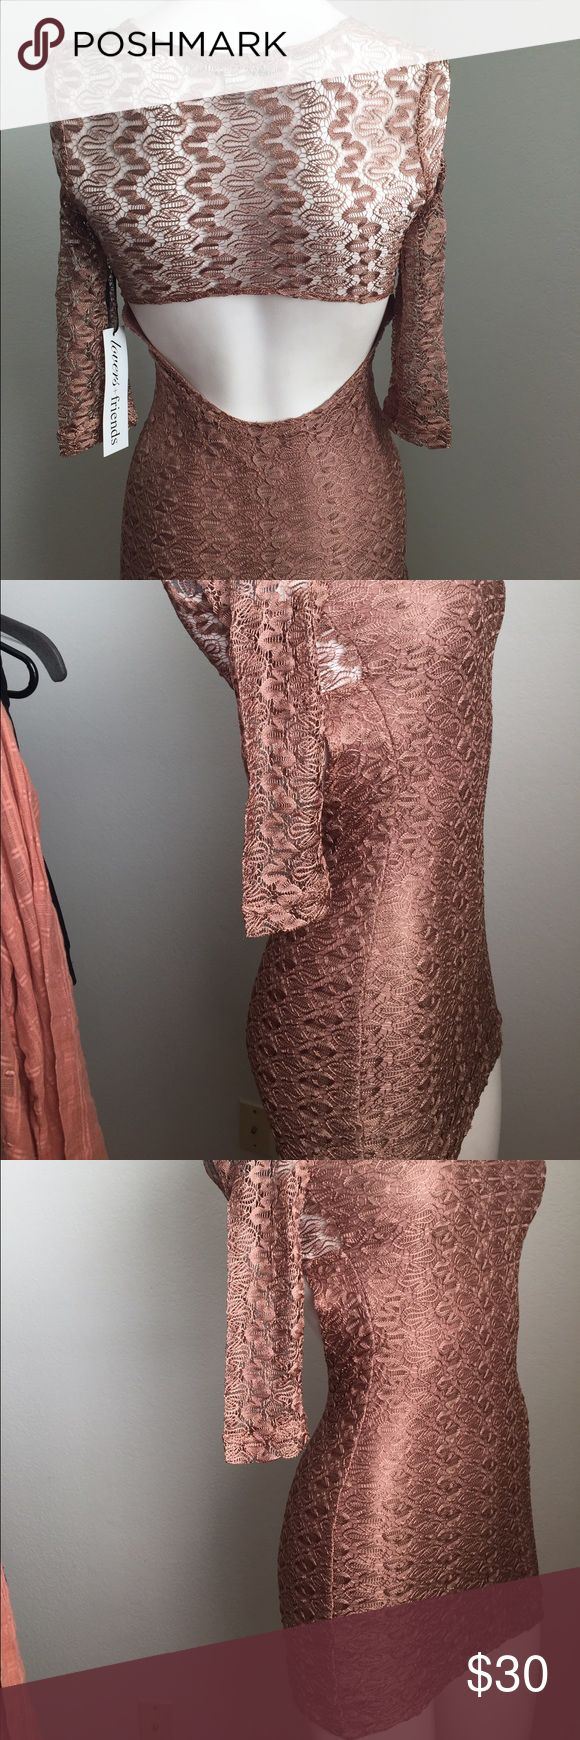 Gorgeous beige lace dress with cutout The perfect date dress! U-Neck Long Sleeve Cutout Back Slip On Partially Lined Measures Approximately 22'' Long From Natural Waist; Self: 60% Nylon / 30% Cotton / 10% Spandex; Lining: 100% Cotton Lovers + Friends Dresses